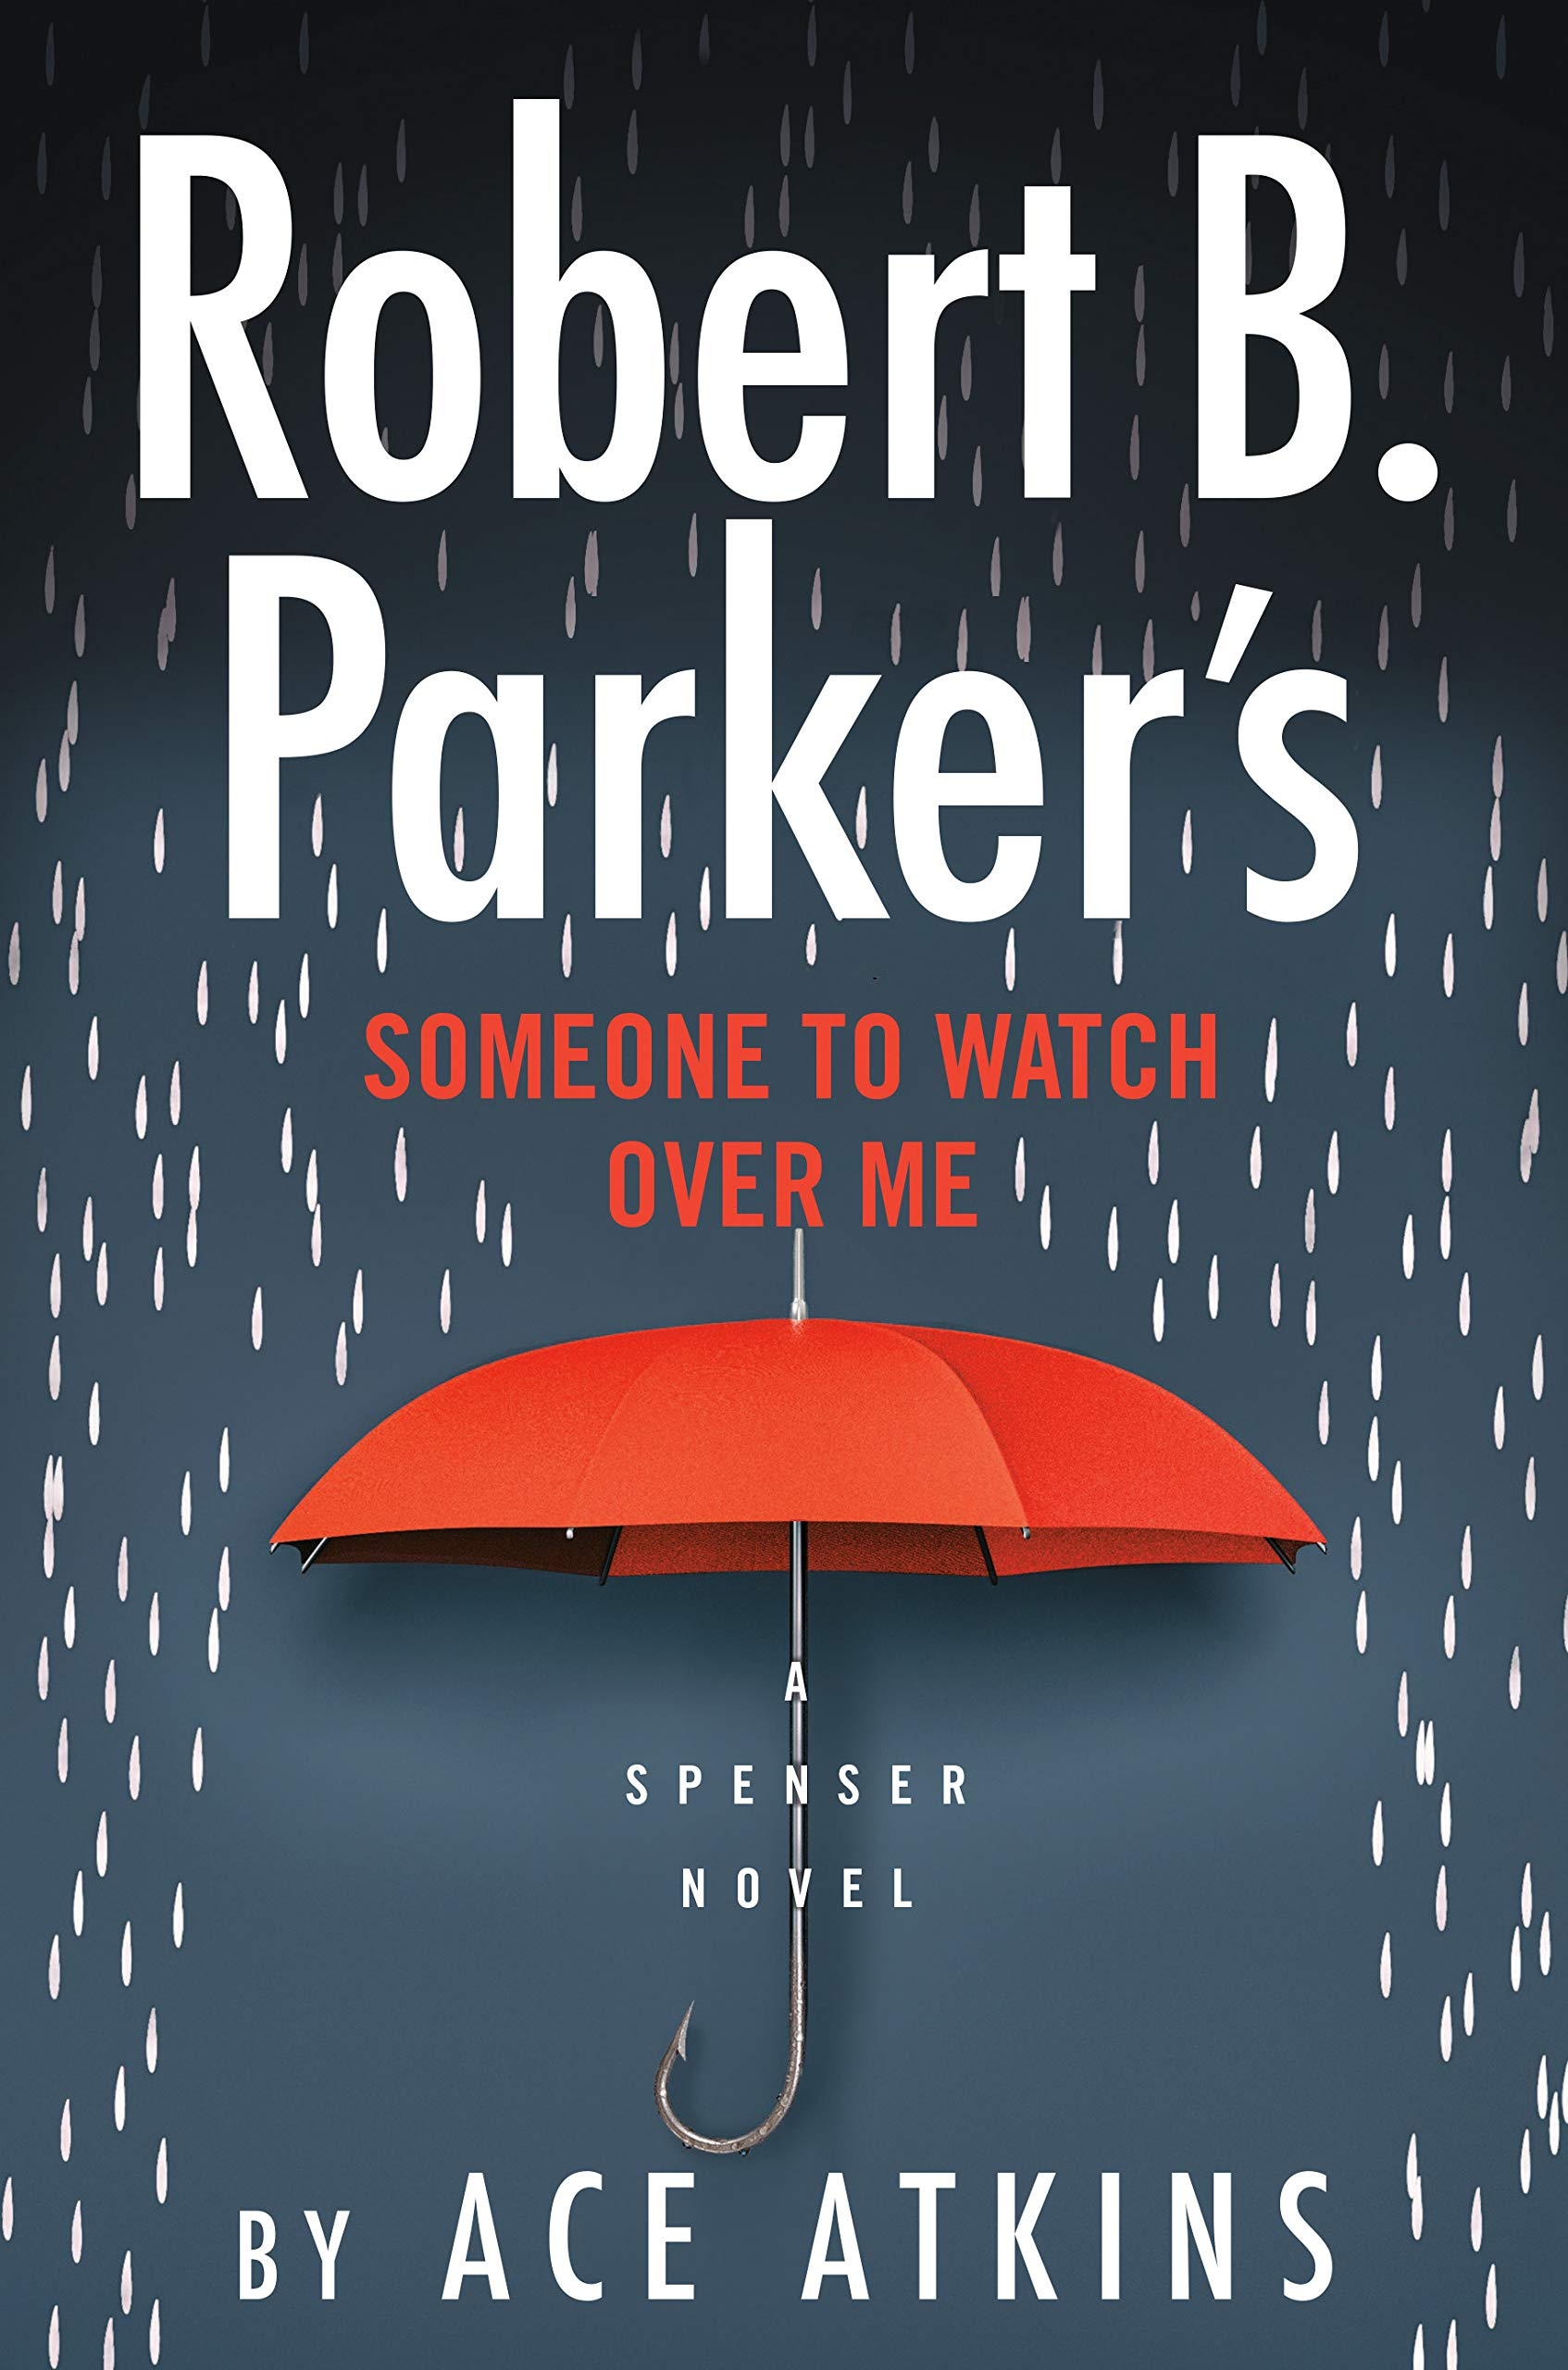 Book Cover: Robert B. Parker's Someone to Watch Over Me